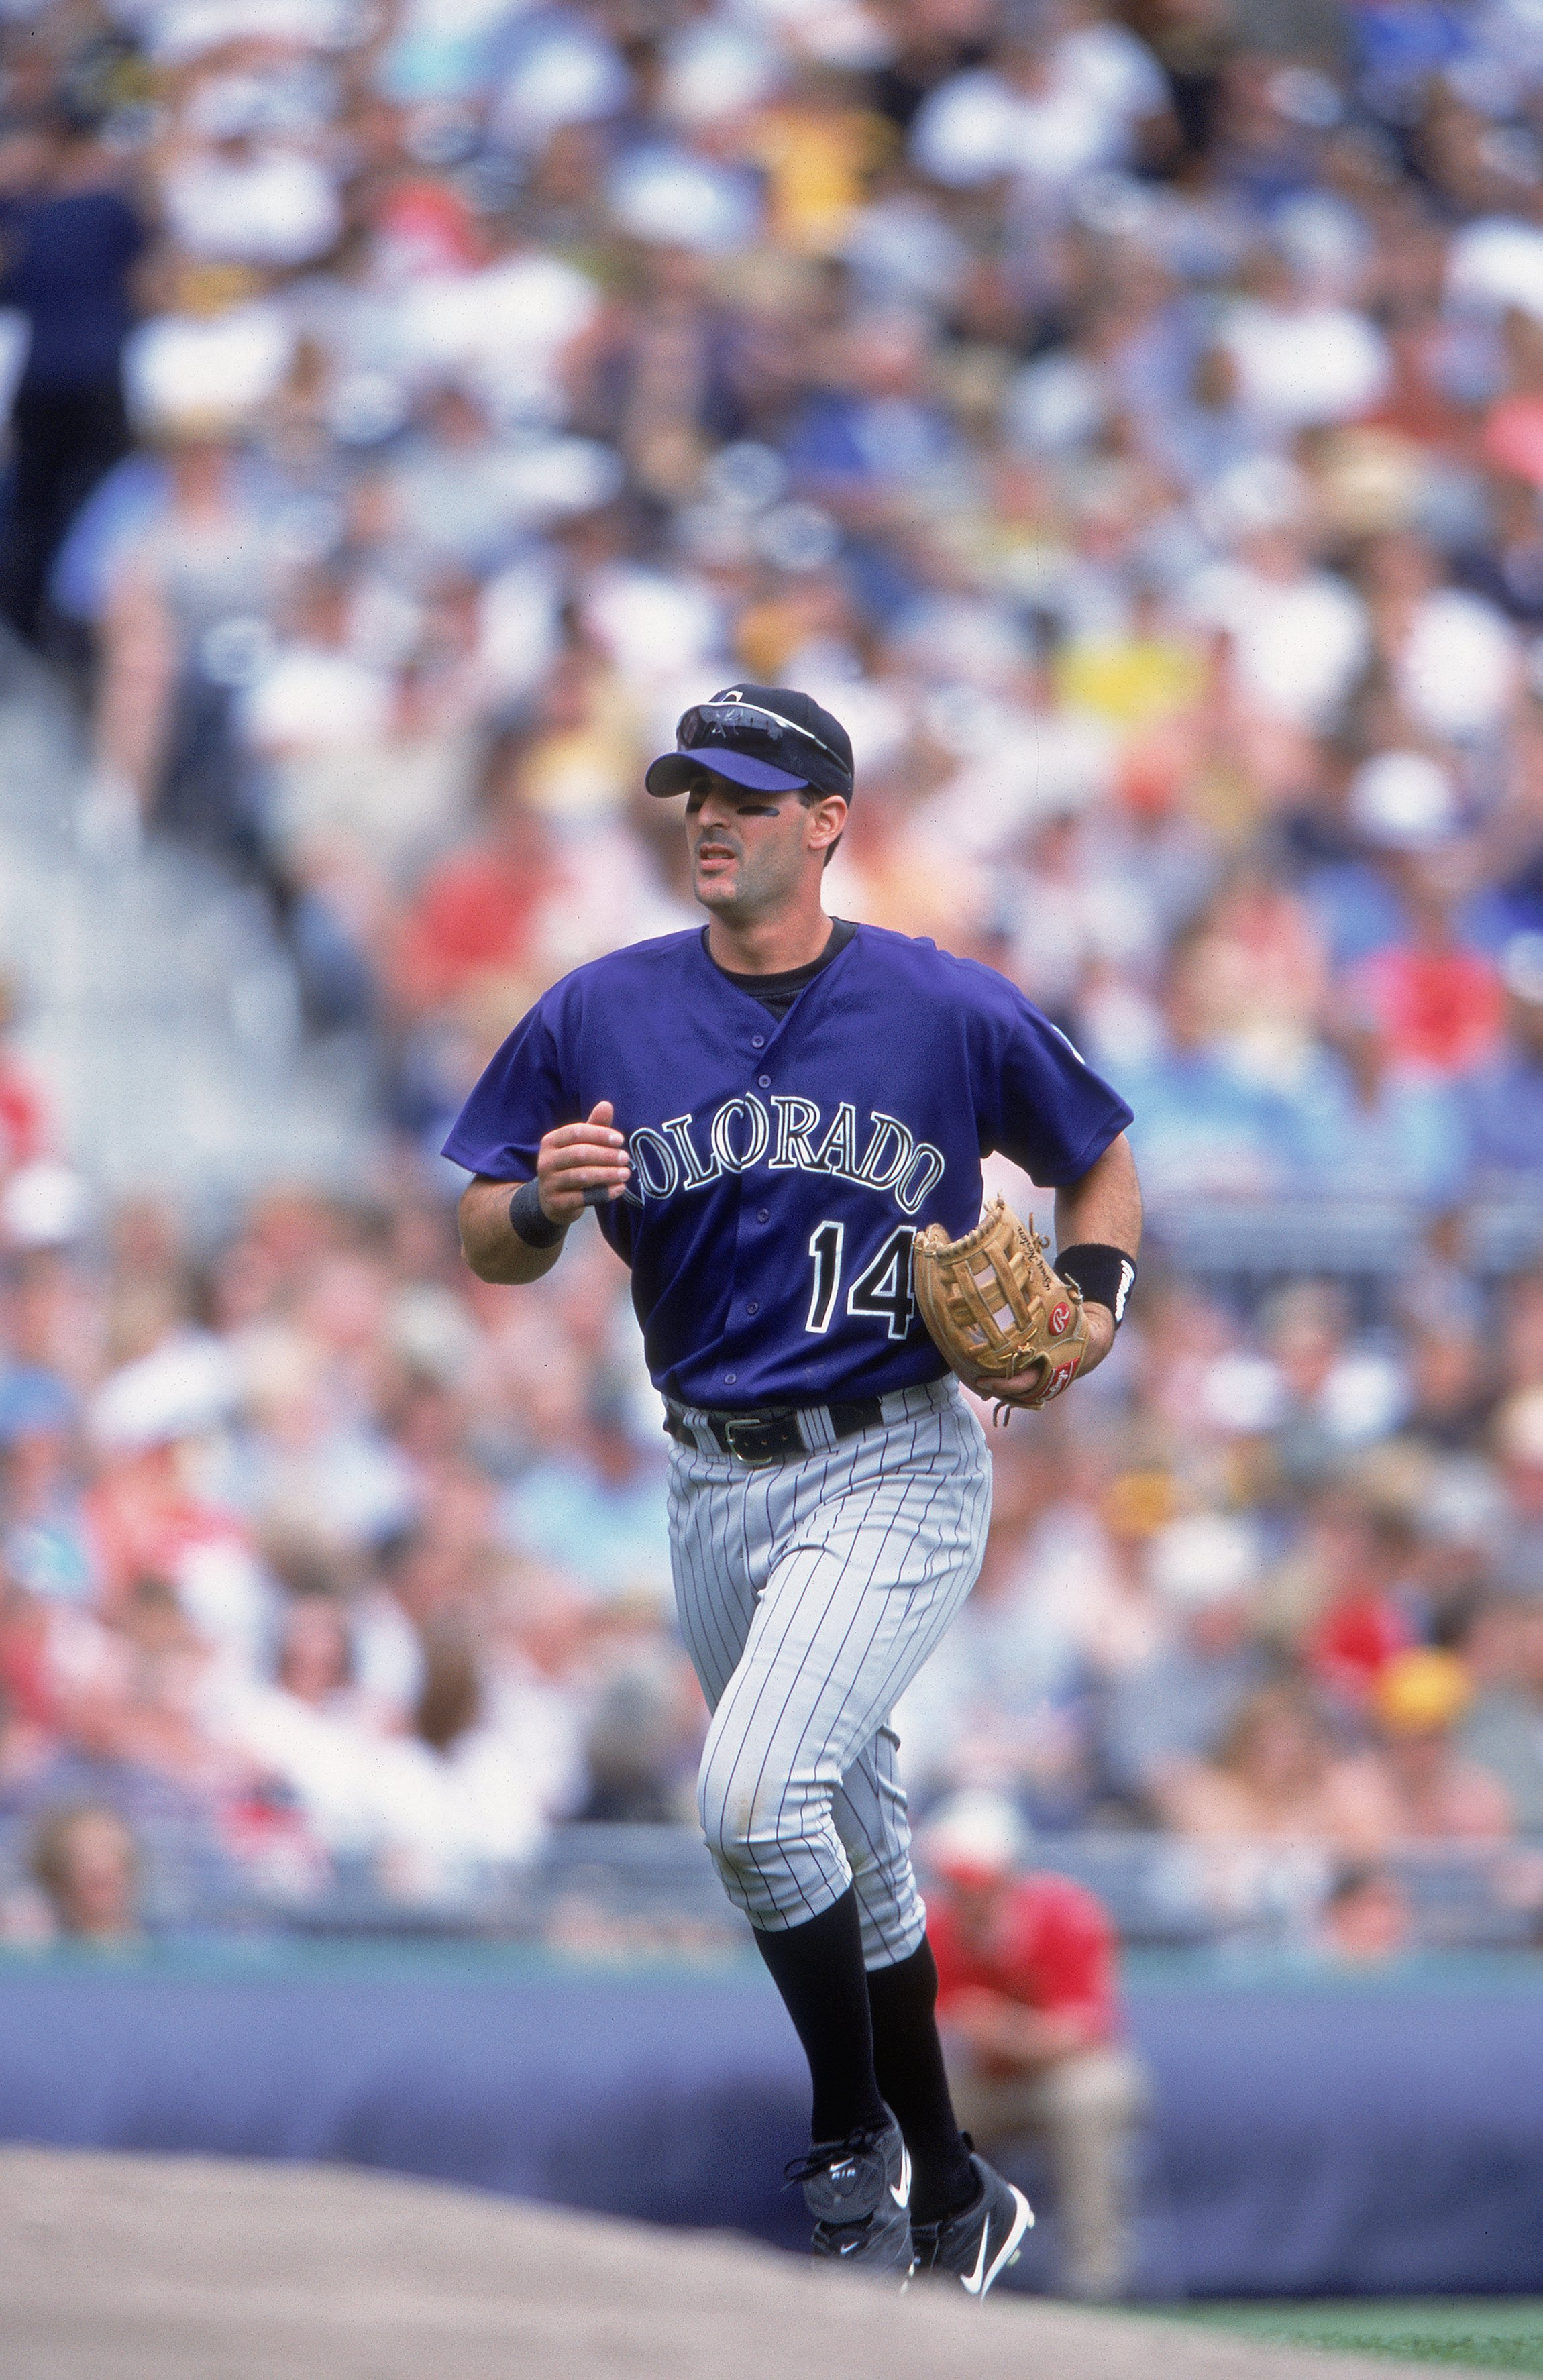 May 6, 2001: Greg Norton #14 of the Colorado Rockies jogs on the field during the game against the Pittsuburgh Pirates at PNC Park in Pittsburgh, Pennsylvania. The Pirates defeated the Rockies 4-3. (credit: Tom Pigeon/Allsport/Getty Images)